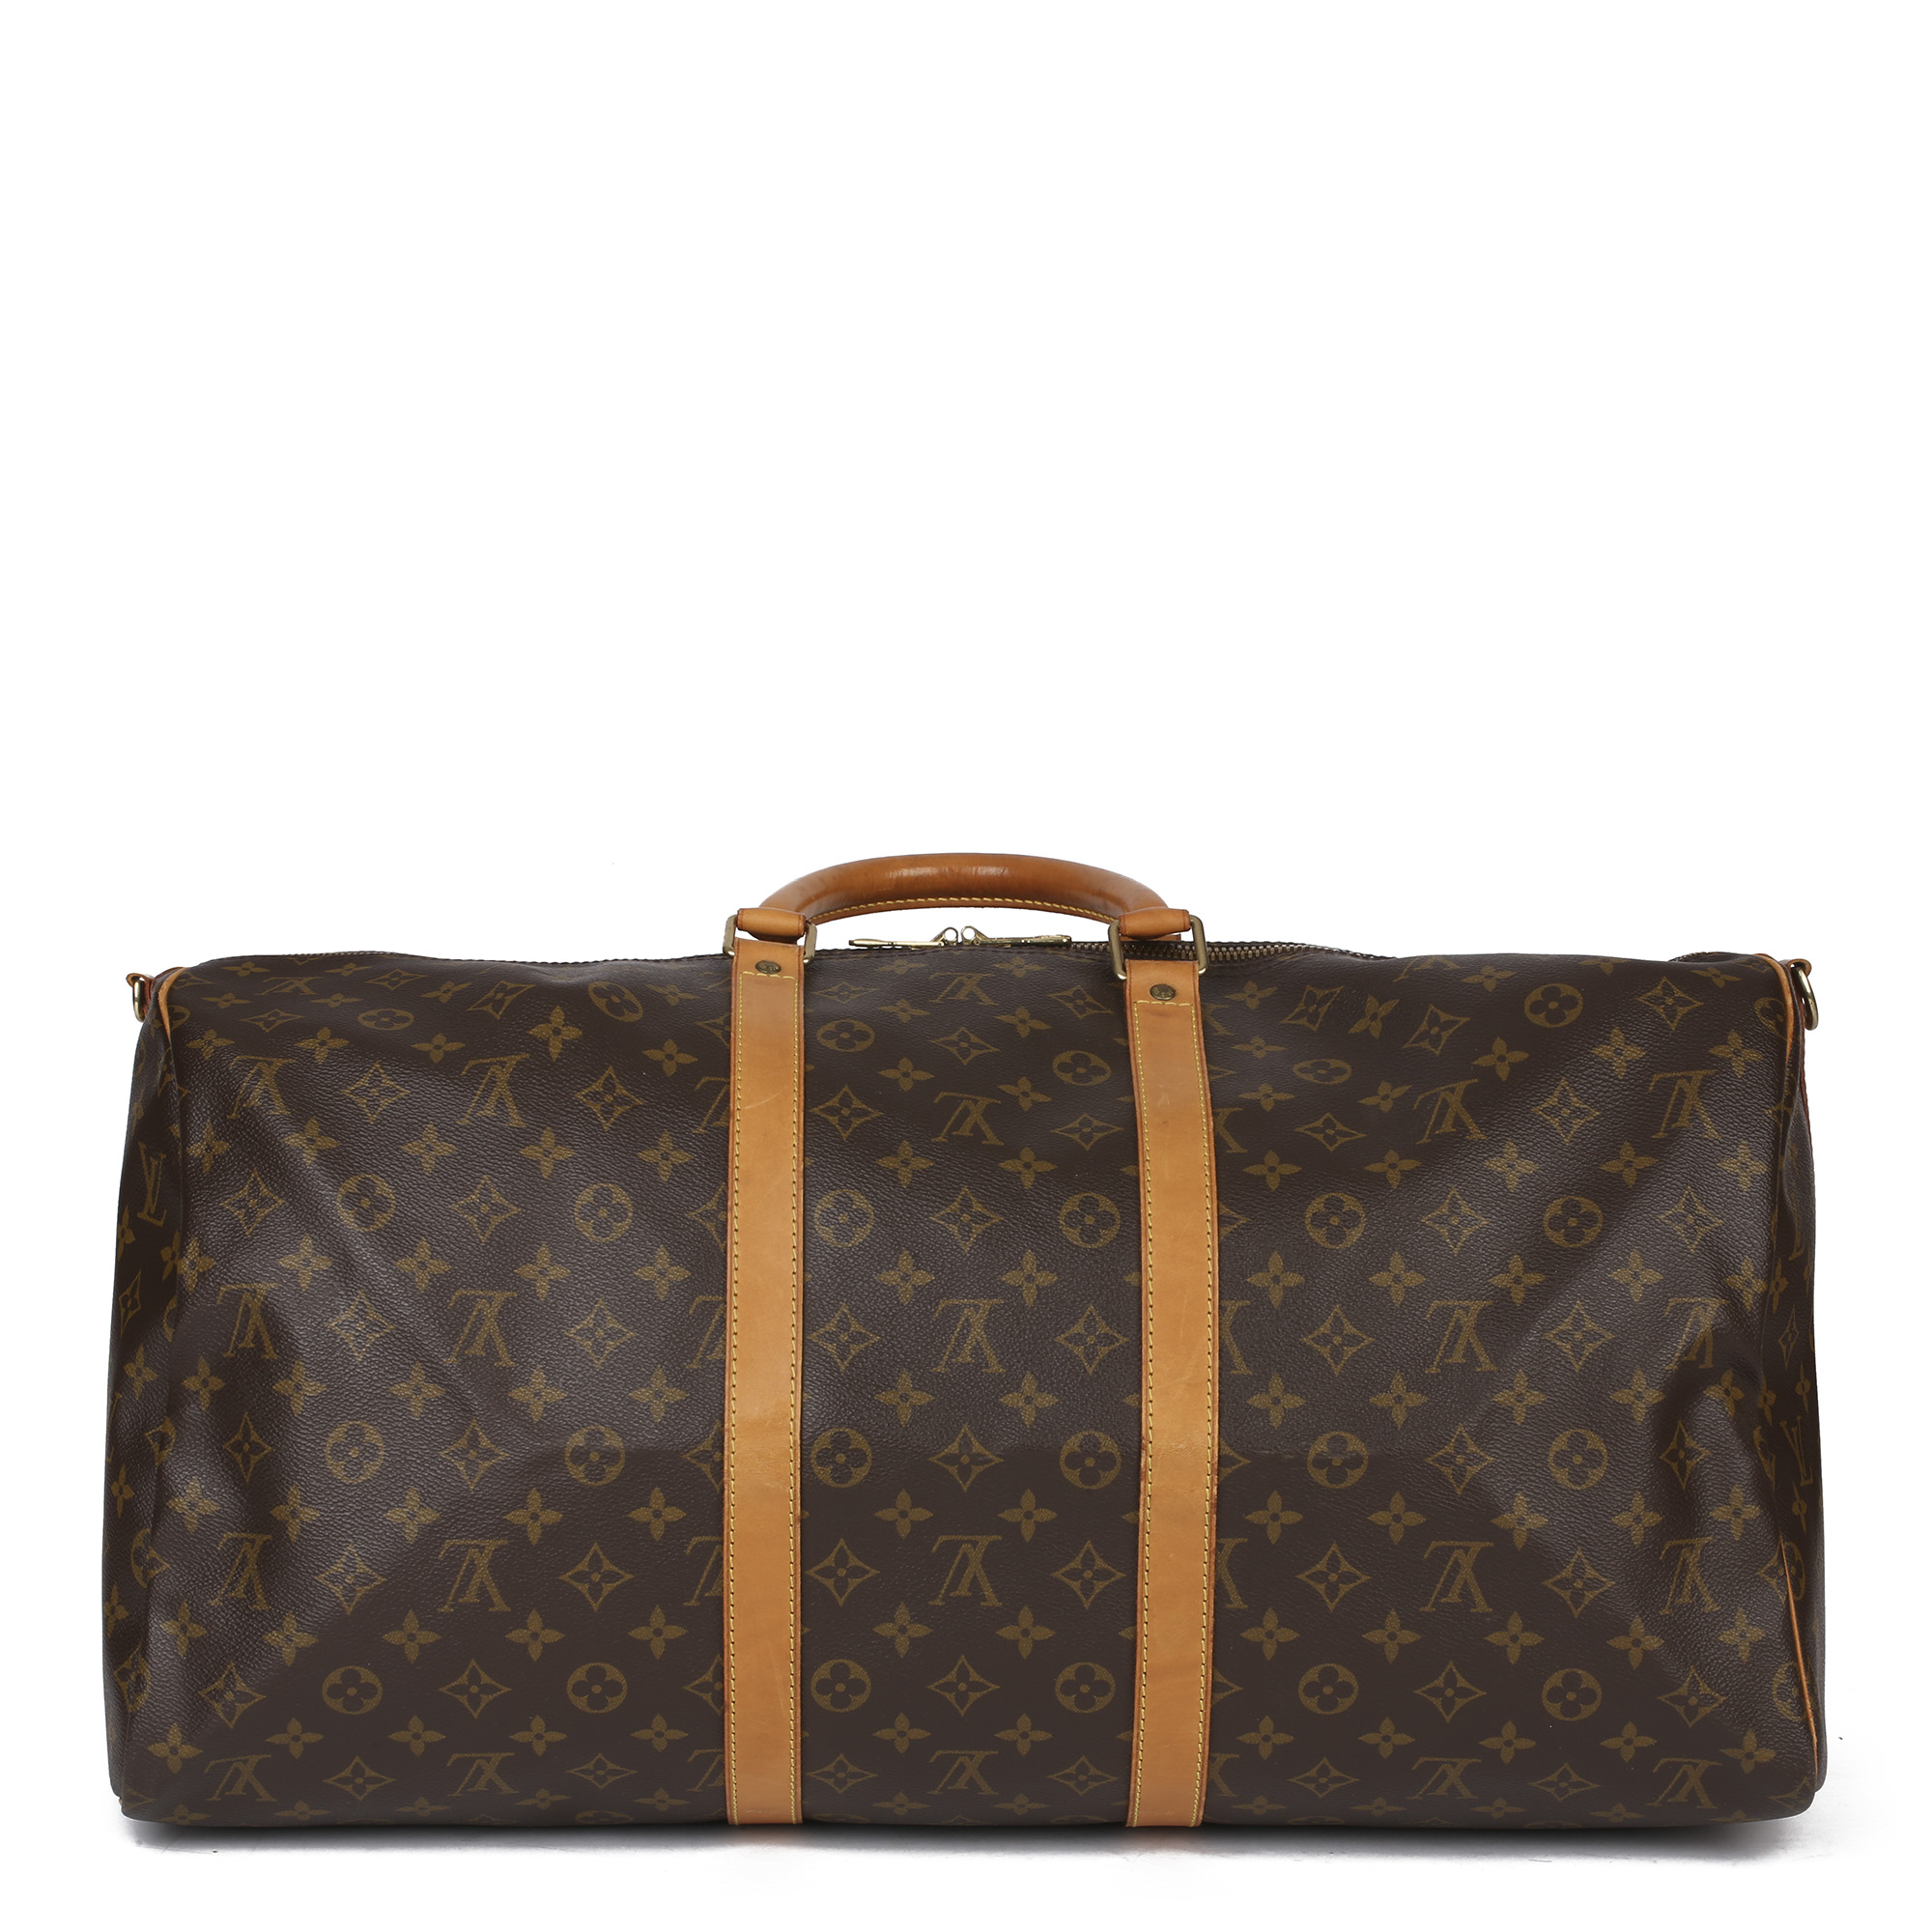 Louis Vuitton Brown Monogram Coated Canvas & Vachetta Leather Vintage Keepall 55 Bandoulire - Image 8 of 10